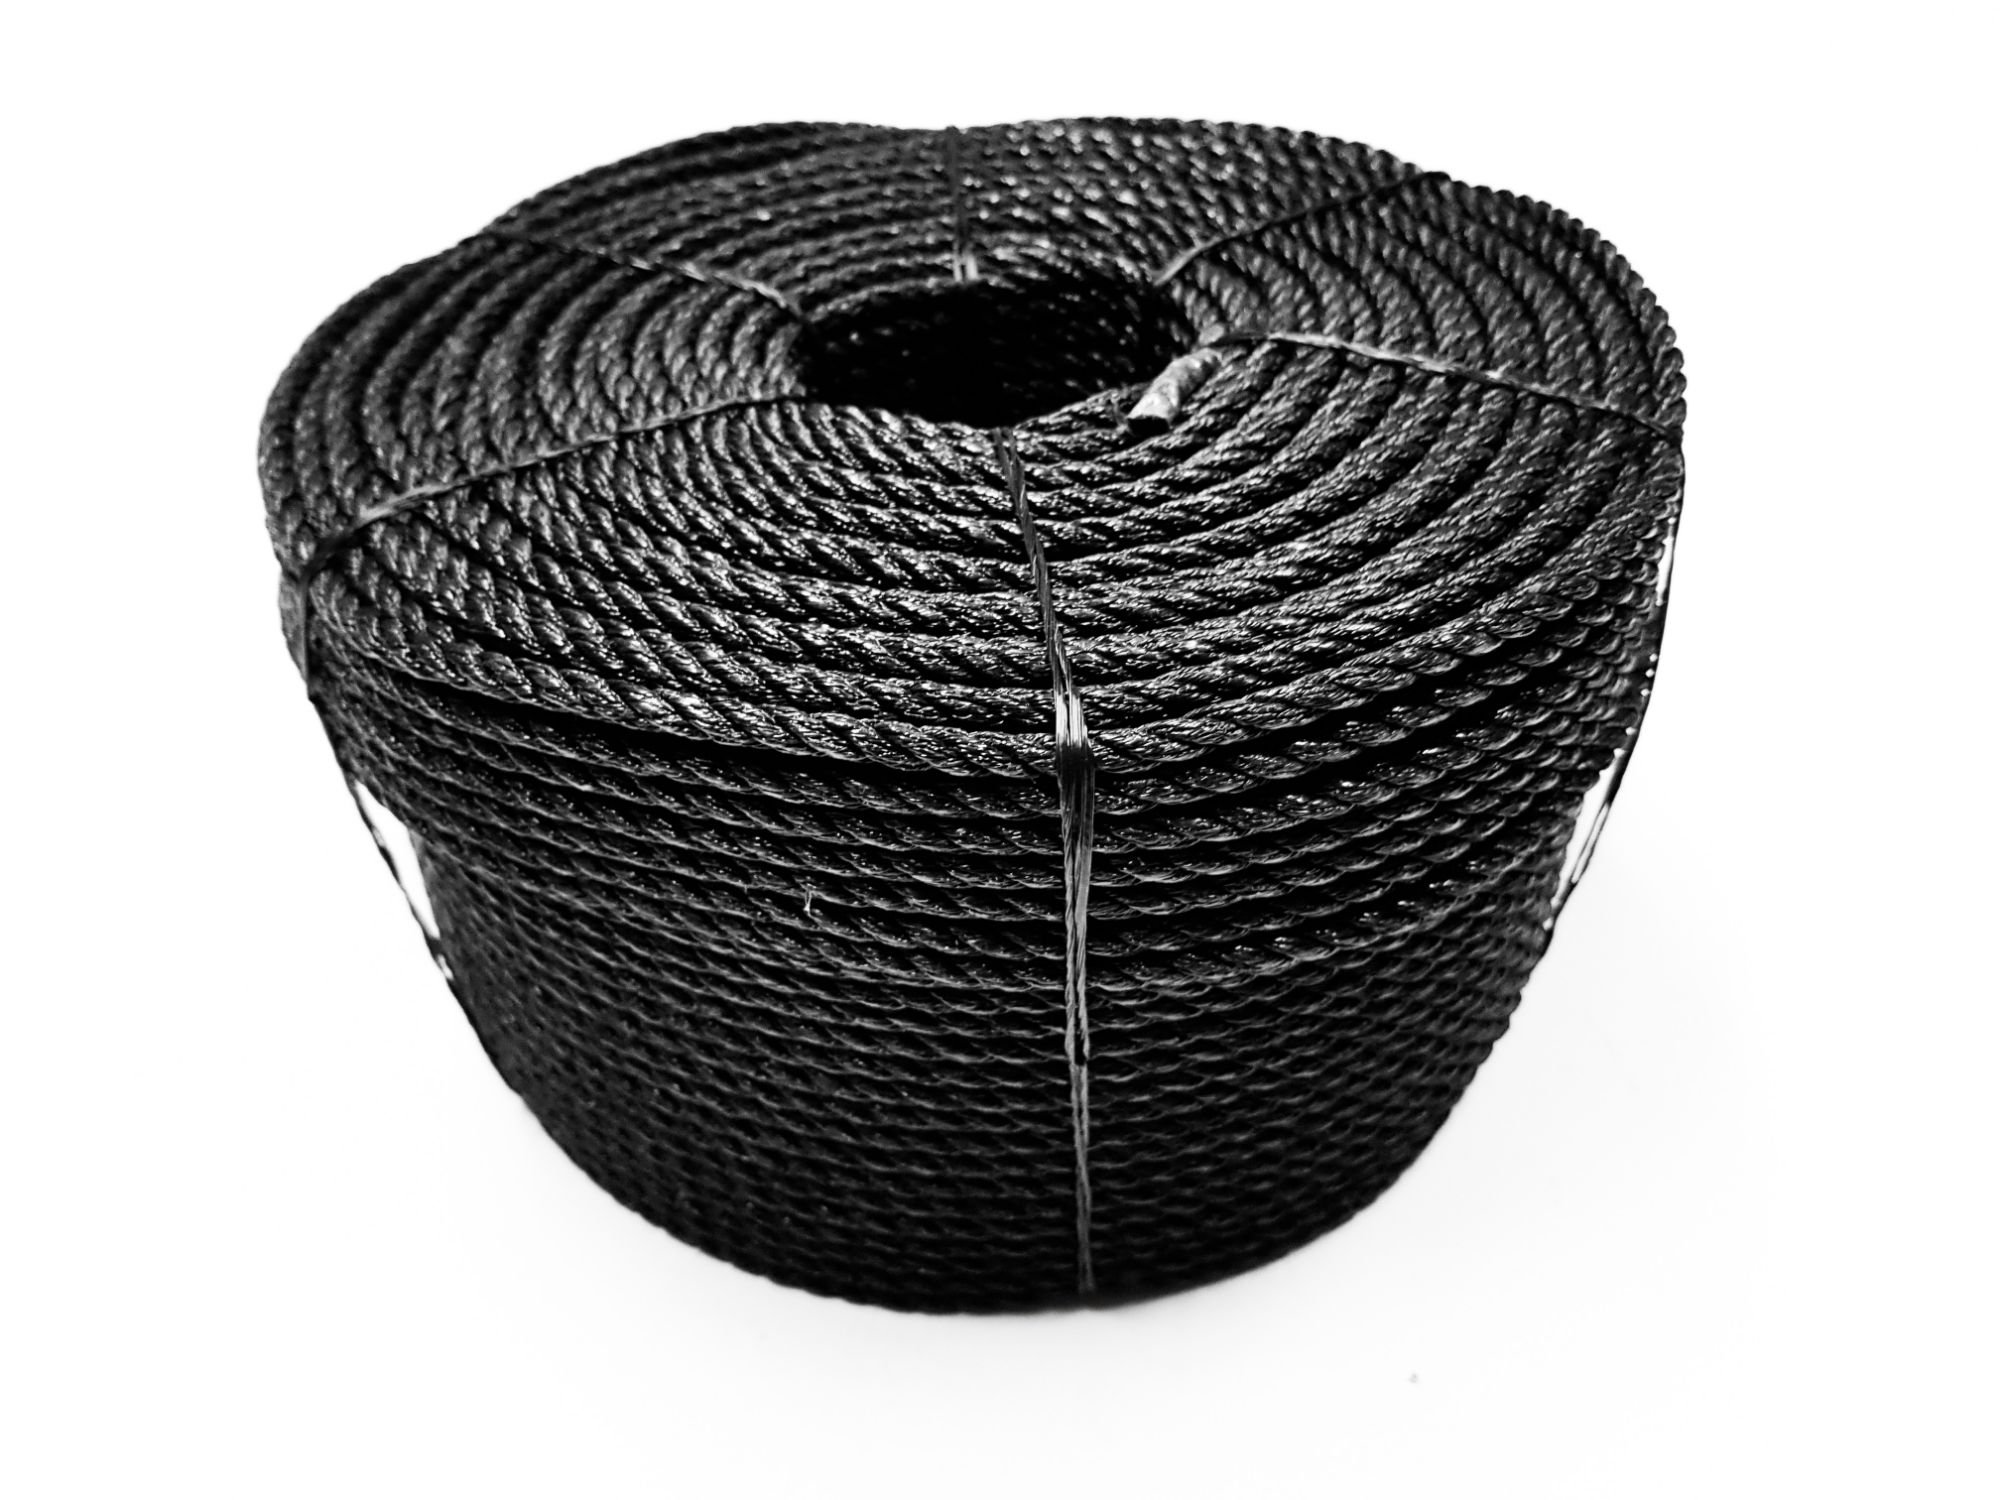 Polyethylene Rope For Sale in Perth, Western Australia